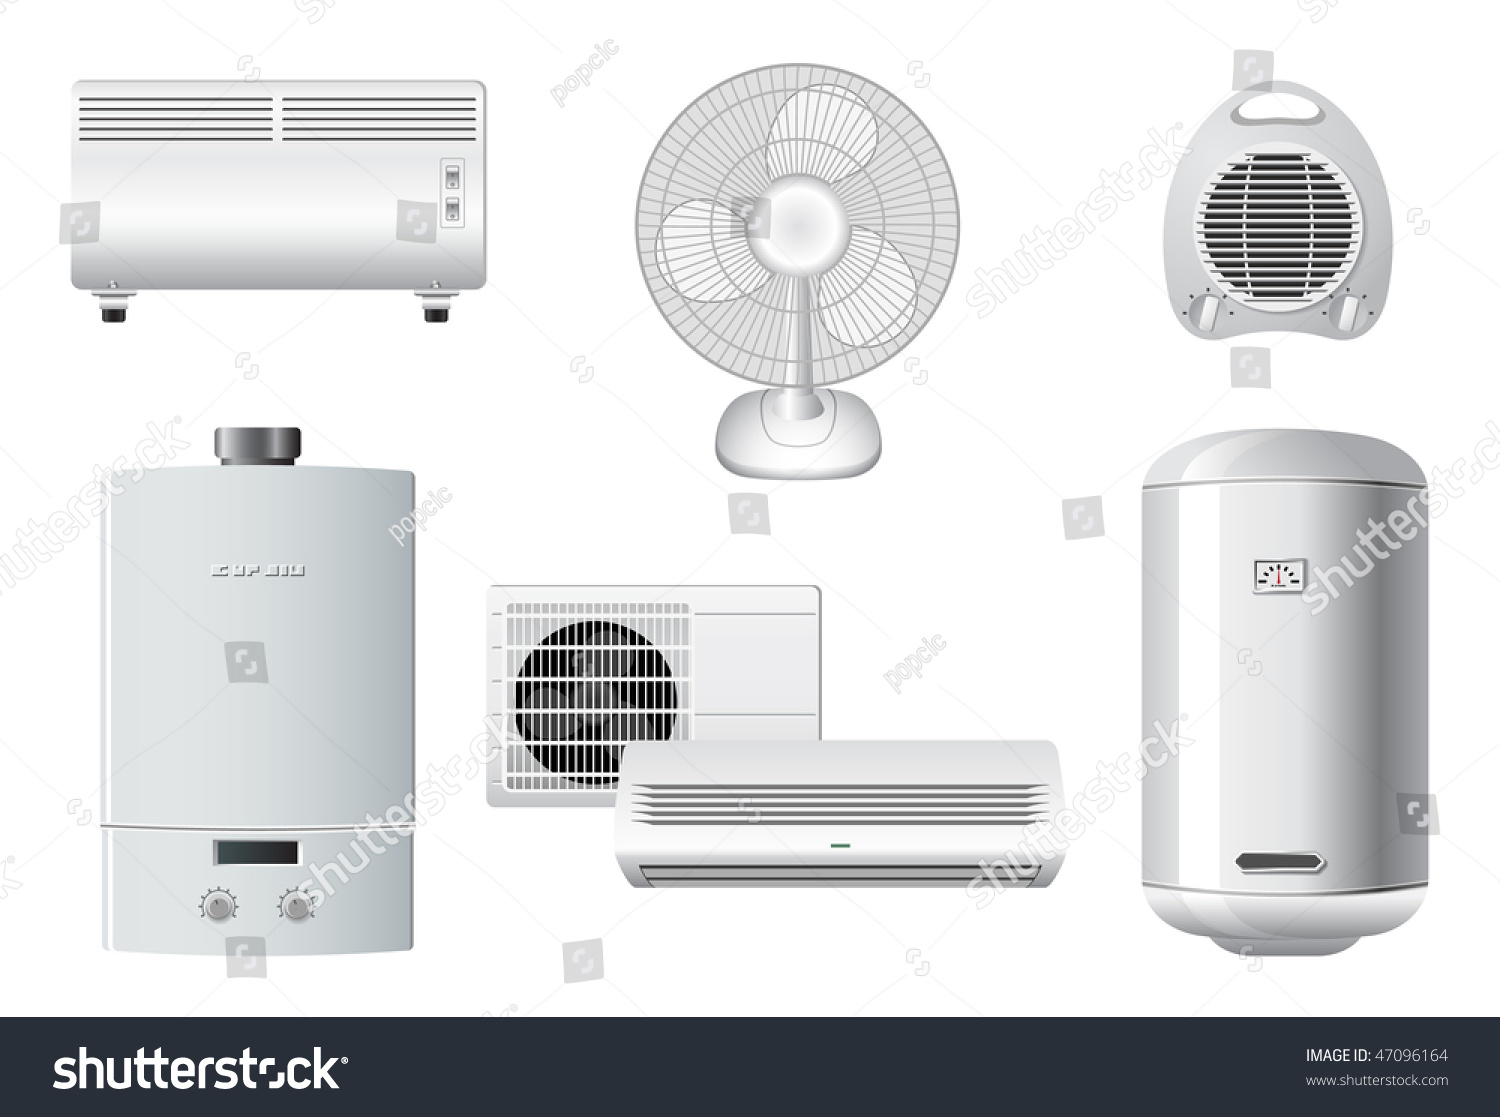 Heating and Air Conditioning (HVAC) terms for getting high